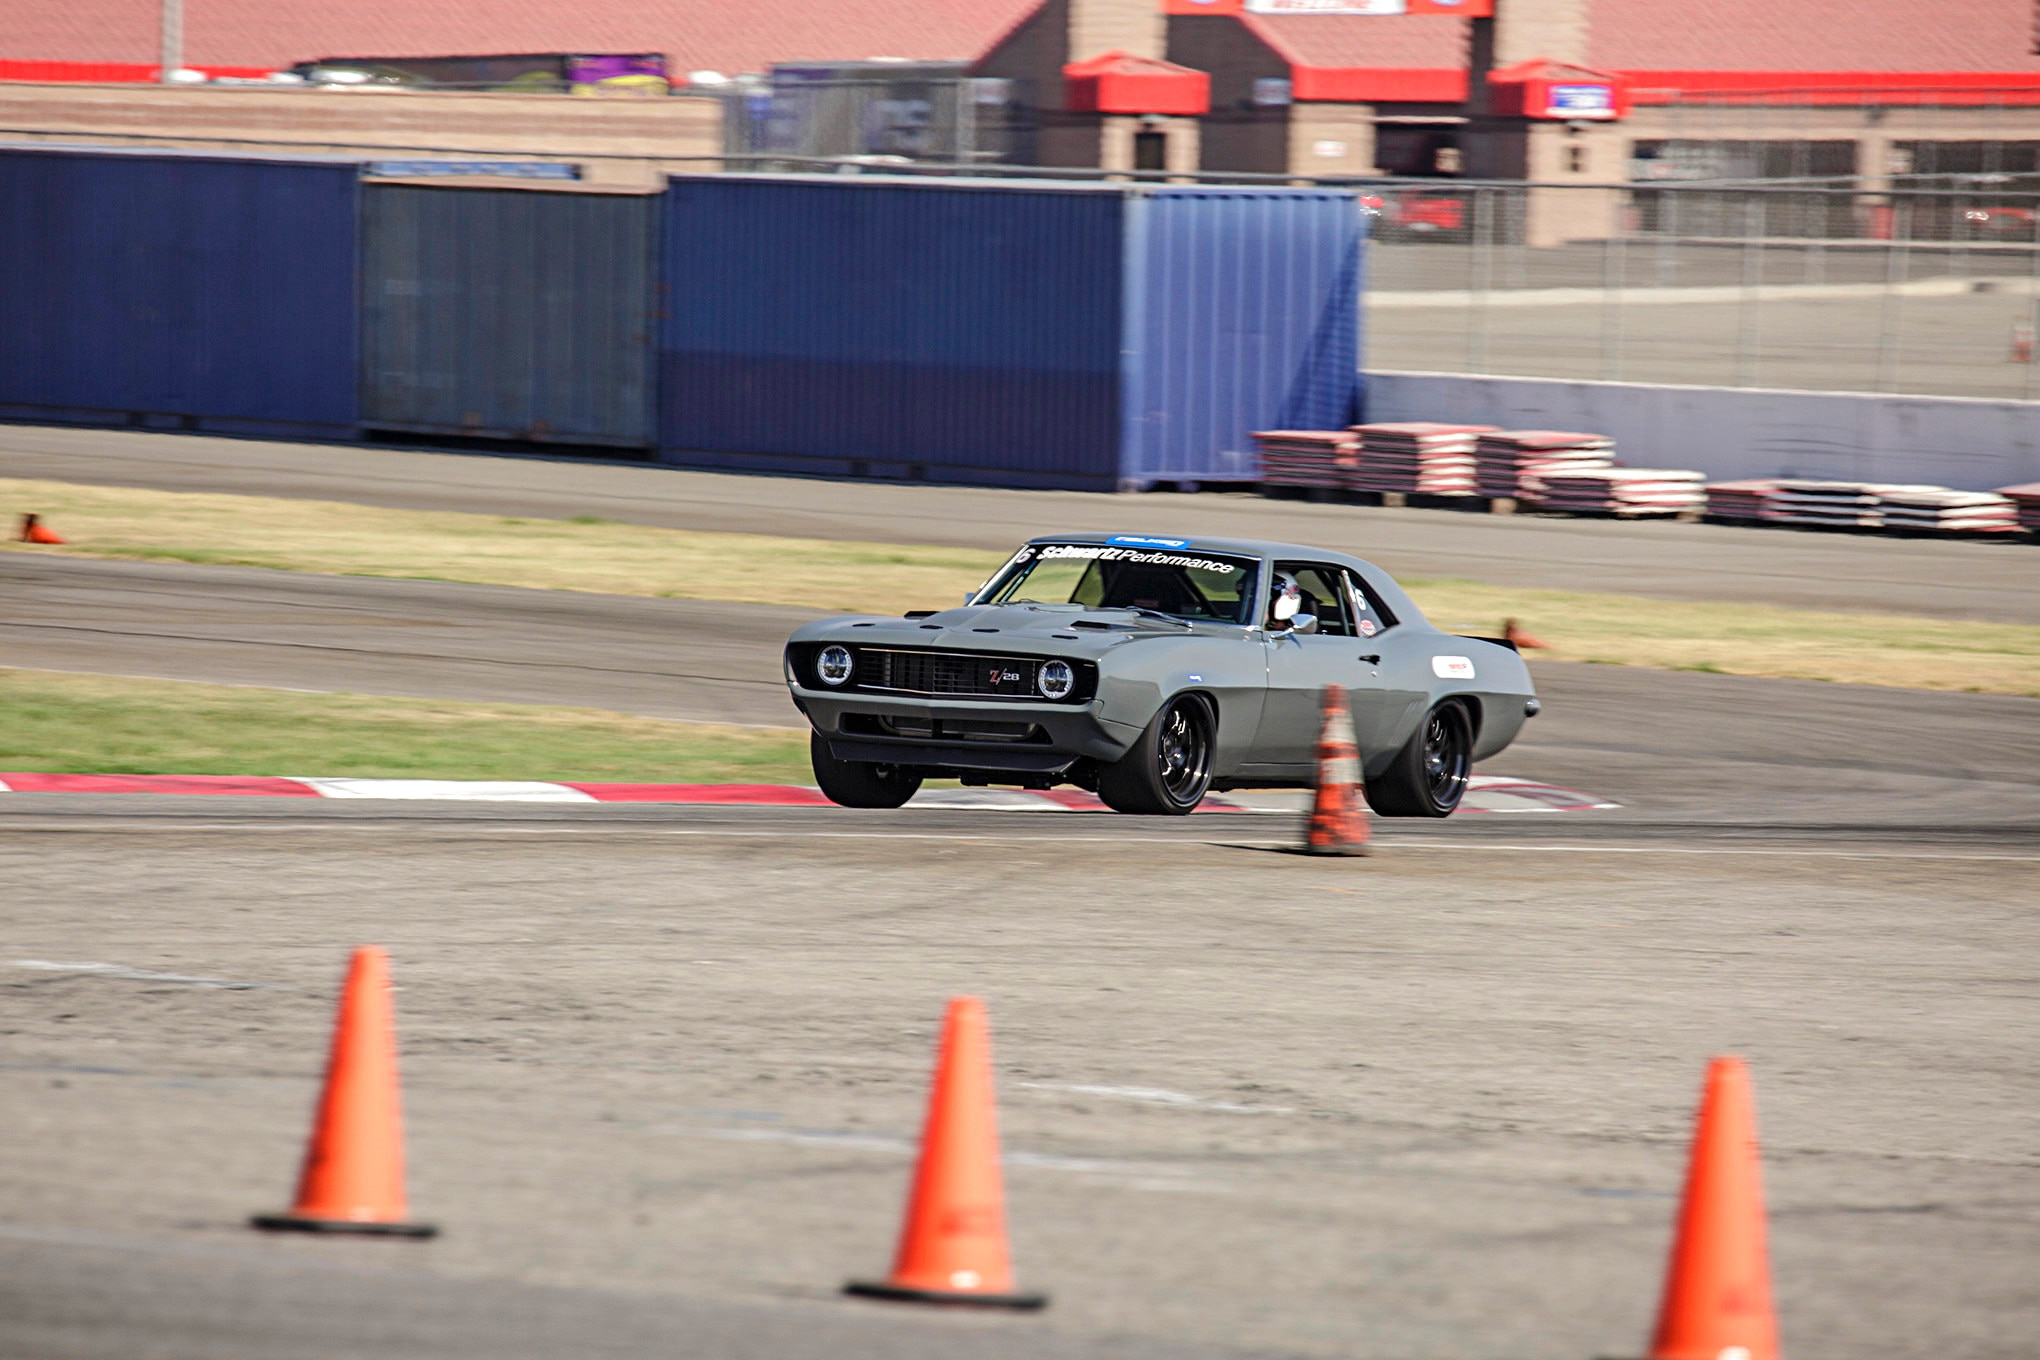 1969 Schwartz Camaro Falken Tires Super Chevy Muscle Car Challenge Rt615k 002